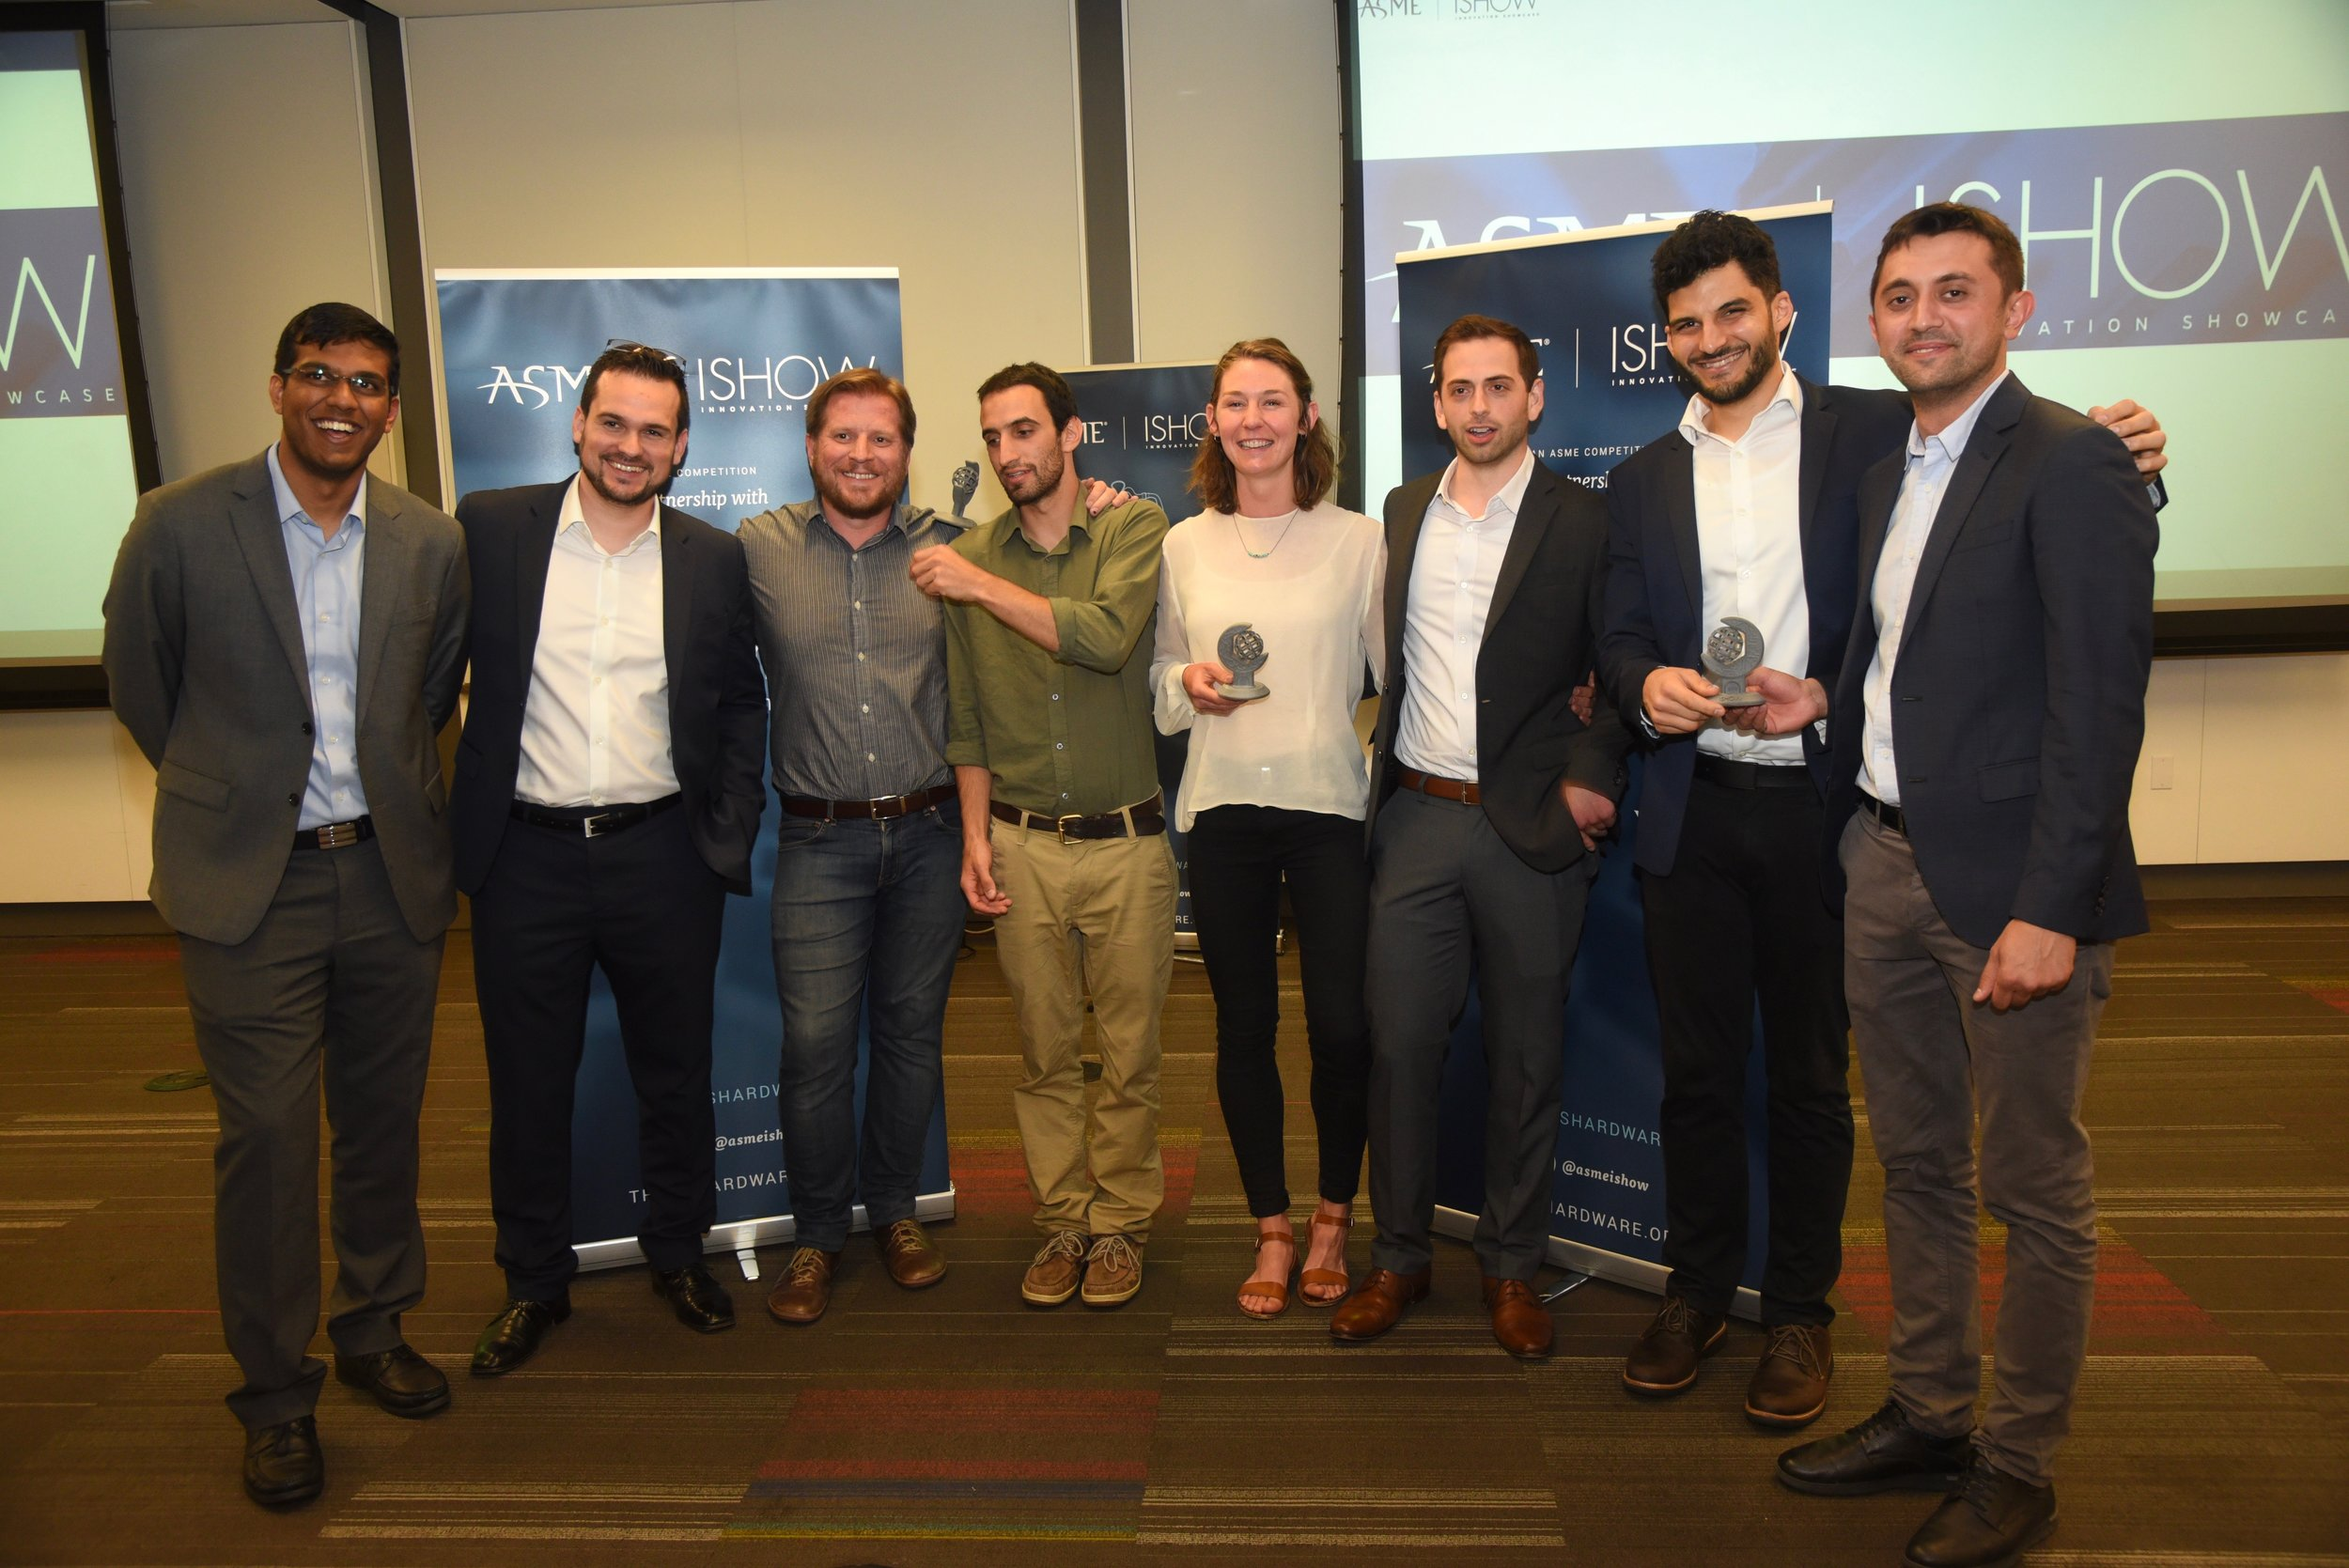 All the winners together. The other two main teams presented unique solutions for egg incubation for income generation and a zero-energy form to introduce evenly distribute oxygen in ponds to increase yields for fisheries.